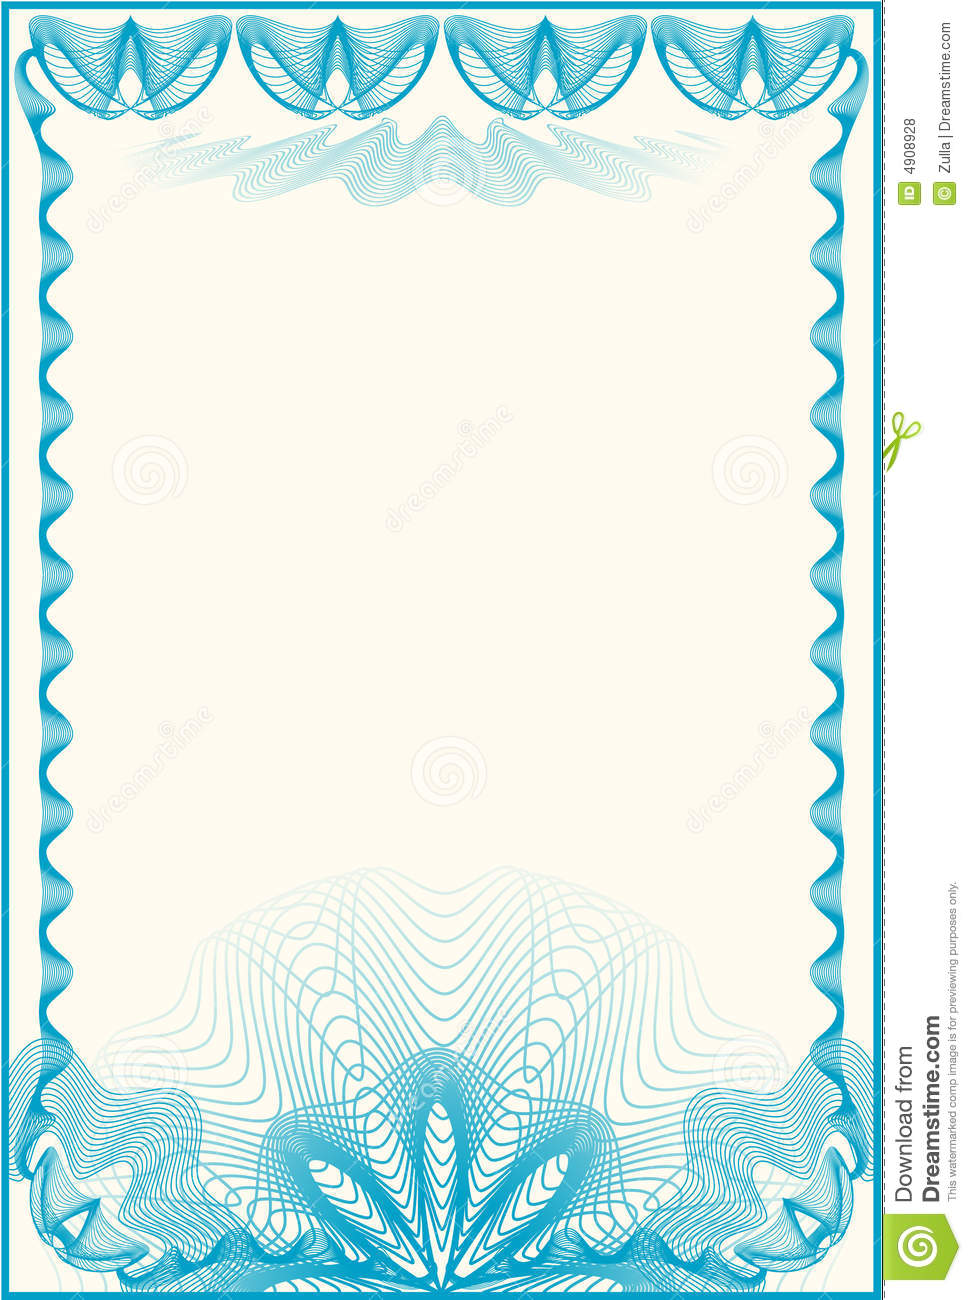 Certificate Border Letter Royalty Free Stock Photos - Image: 4908928